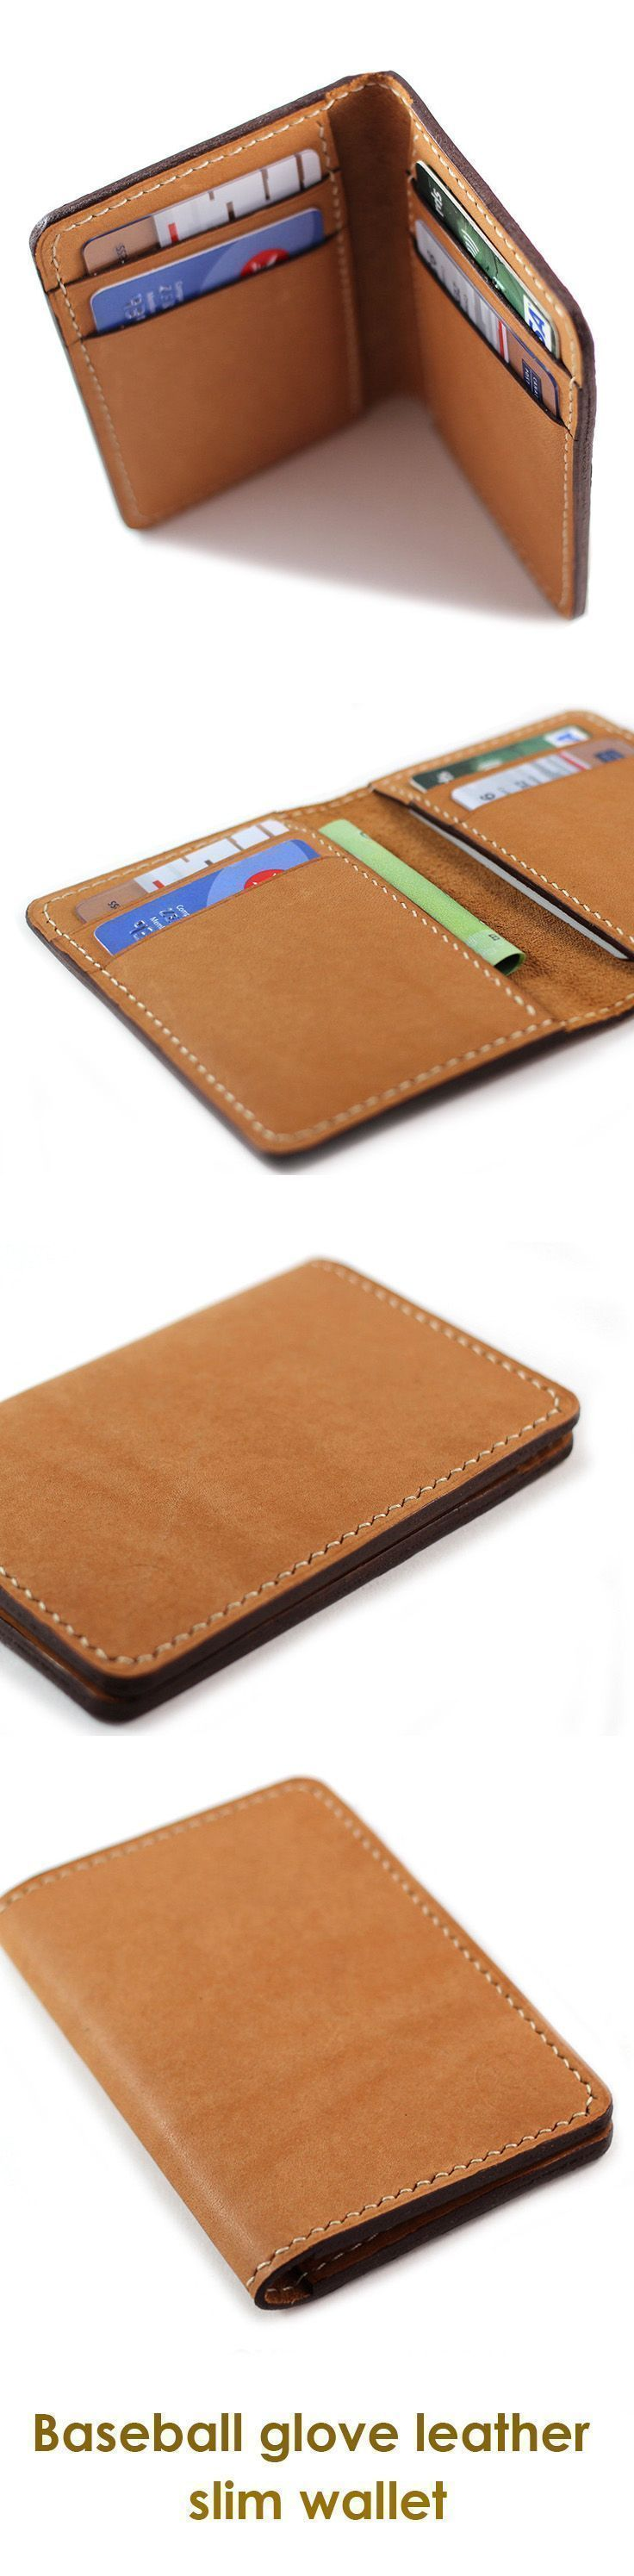 Baseball Glove Leather Slim bi fold (billfold) Wallet in brown. Perfect wallet gift for dad and boyfriend. Gift for groomsmen gift, wedding, birthday, holiday, Christmas, Anniversary gift. Gift for men